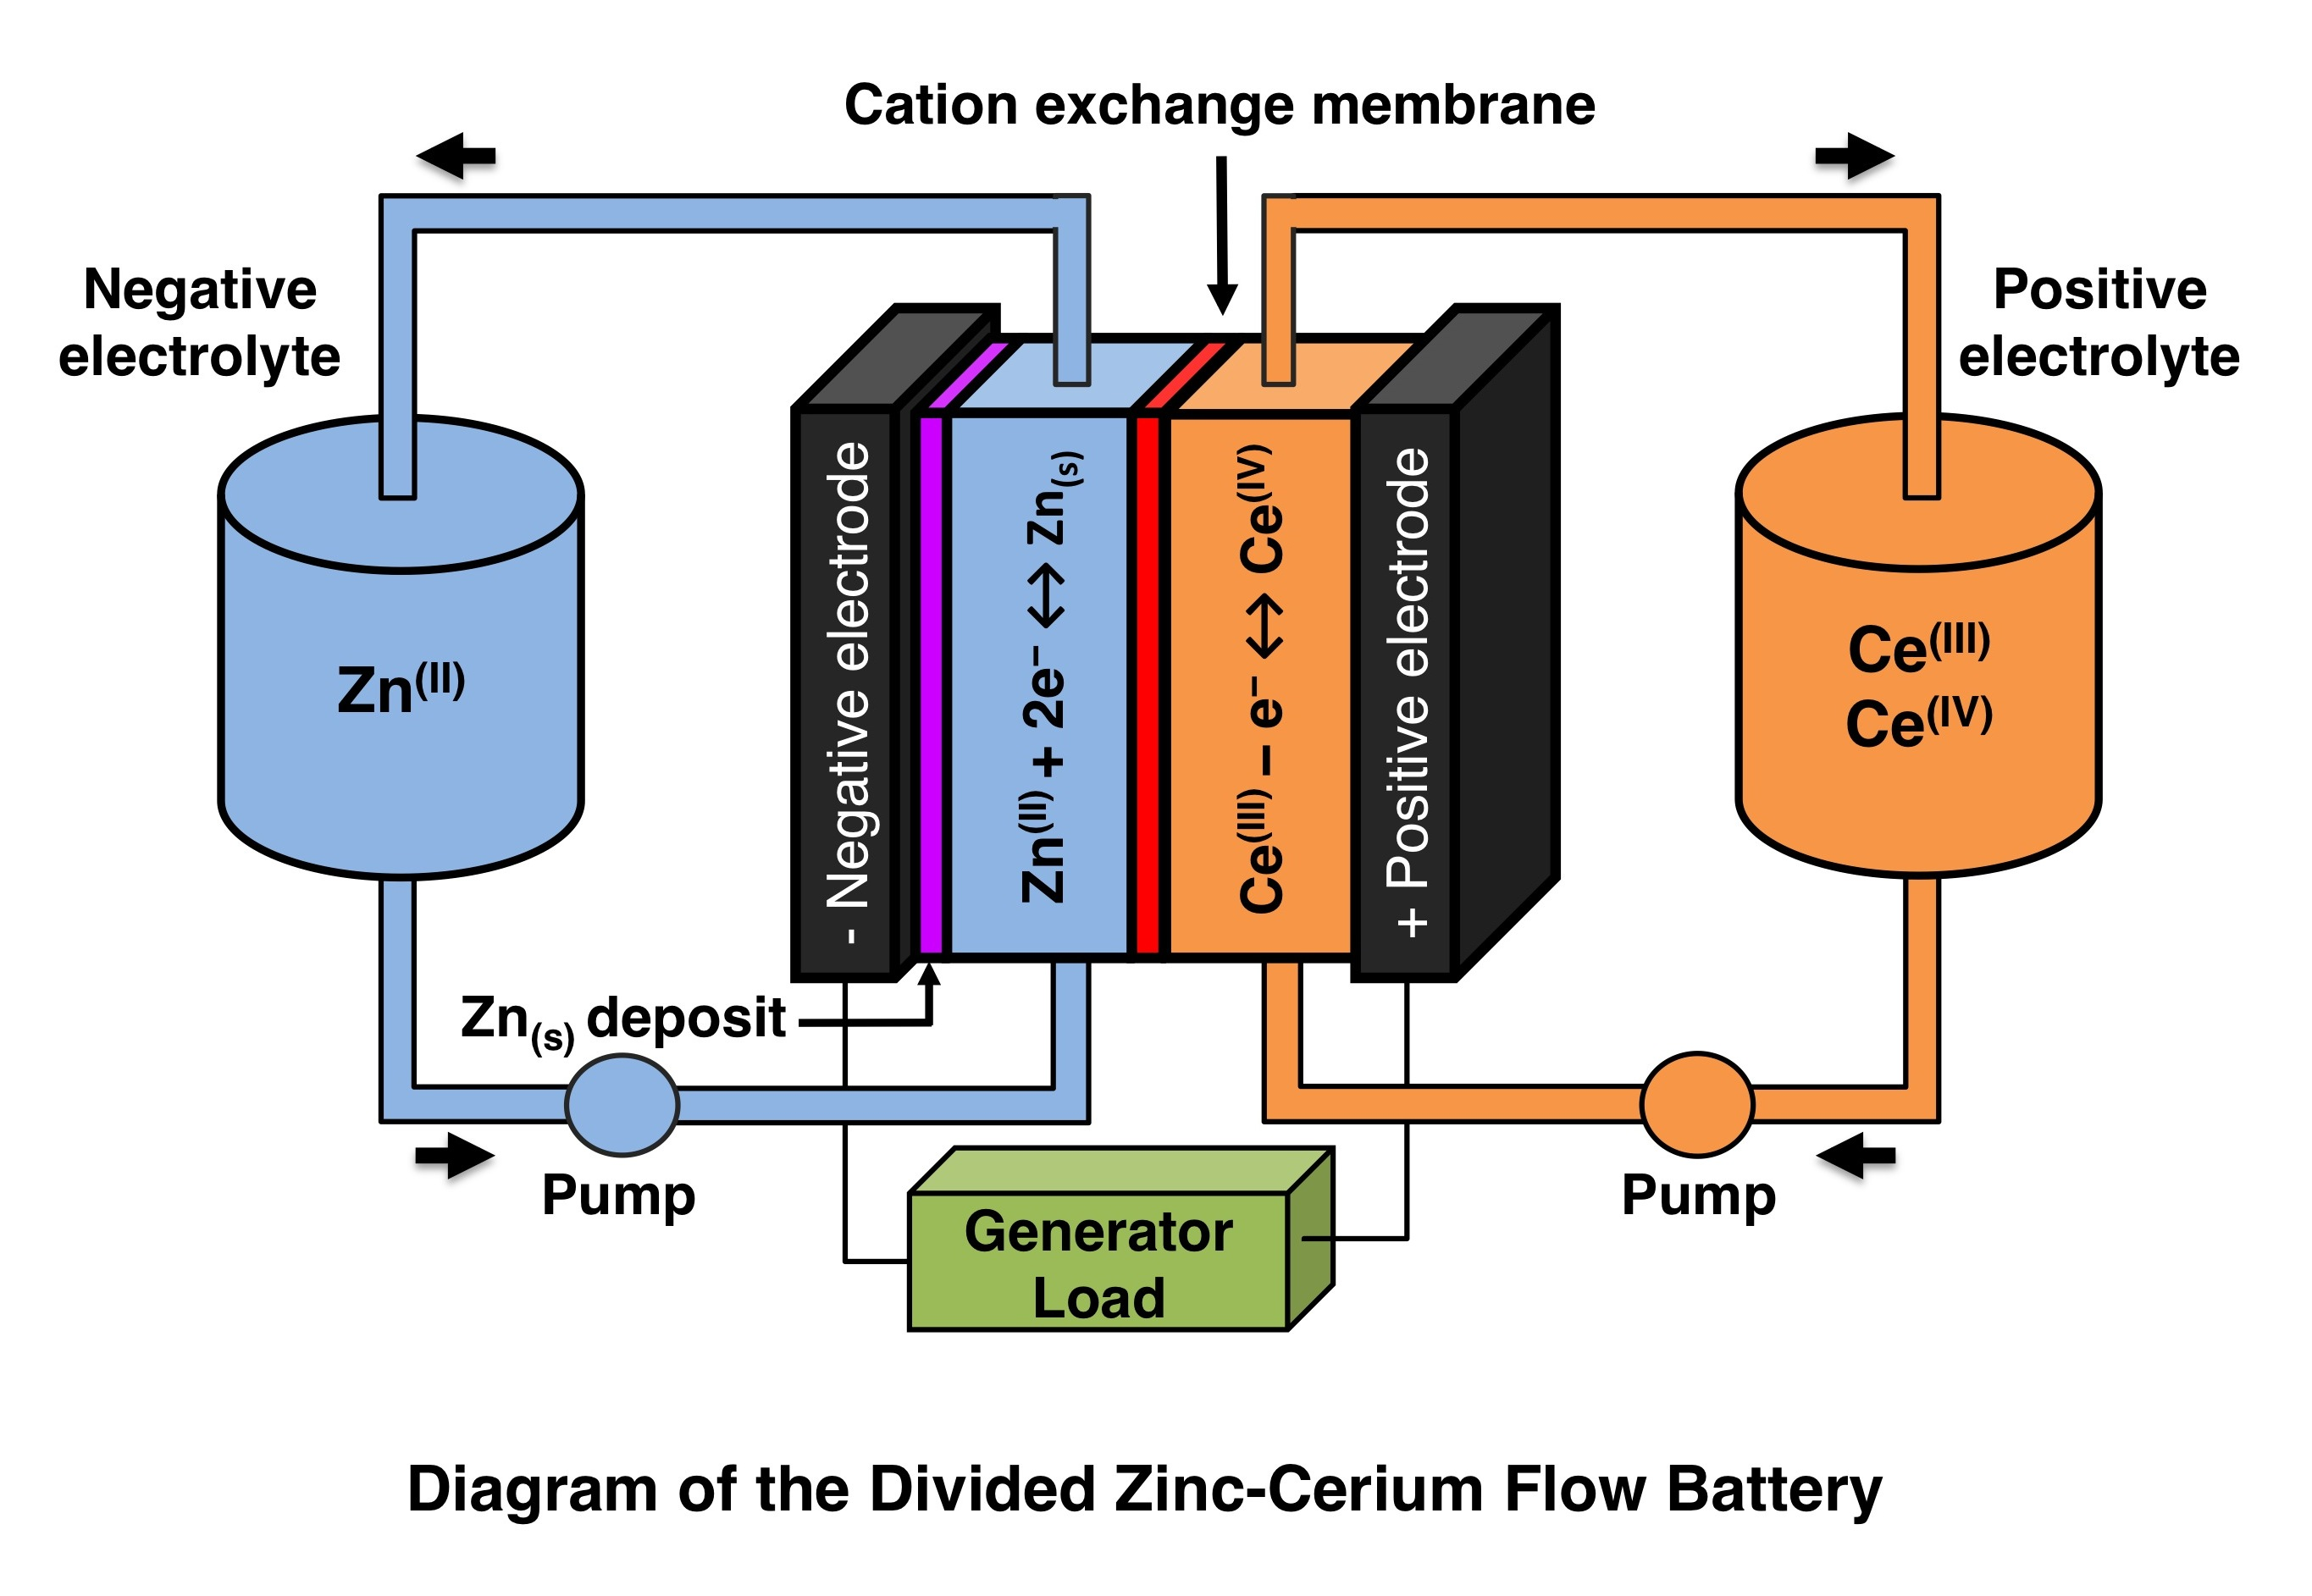 zinc process flow diagram zinc   cerium battery wikipedia  zinc   cerium battery wikipedia